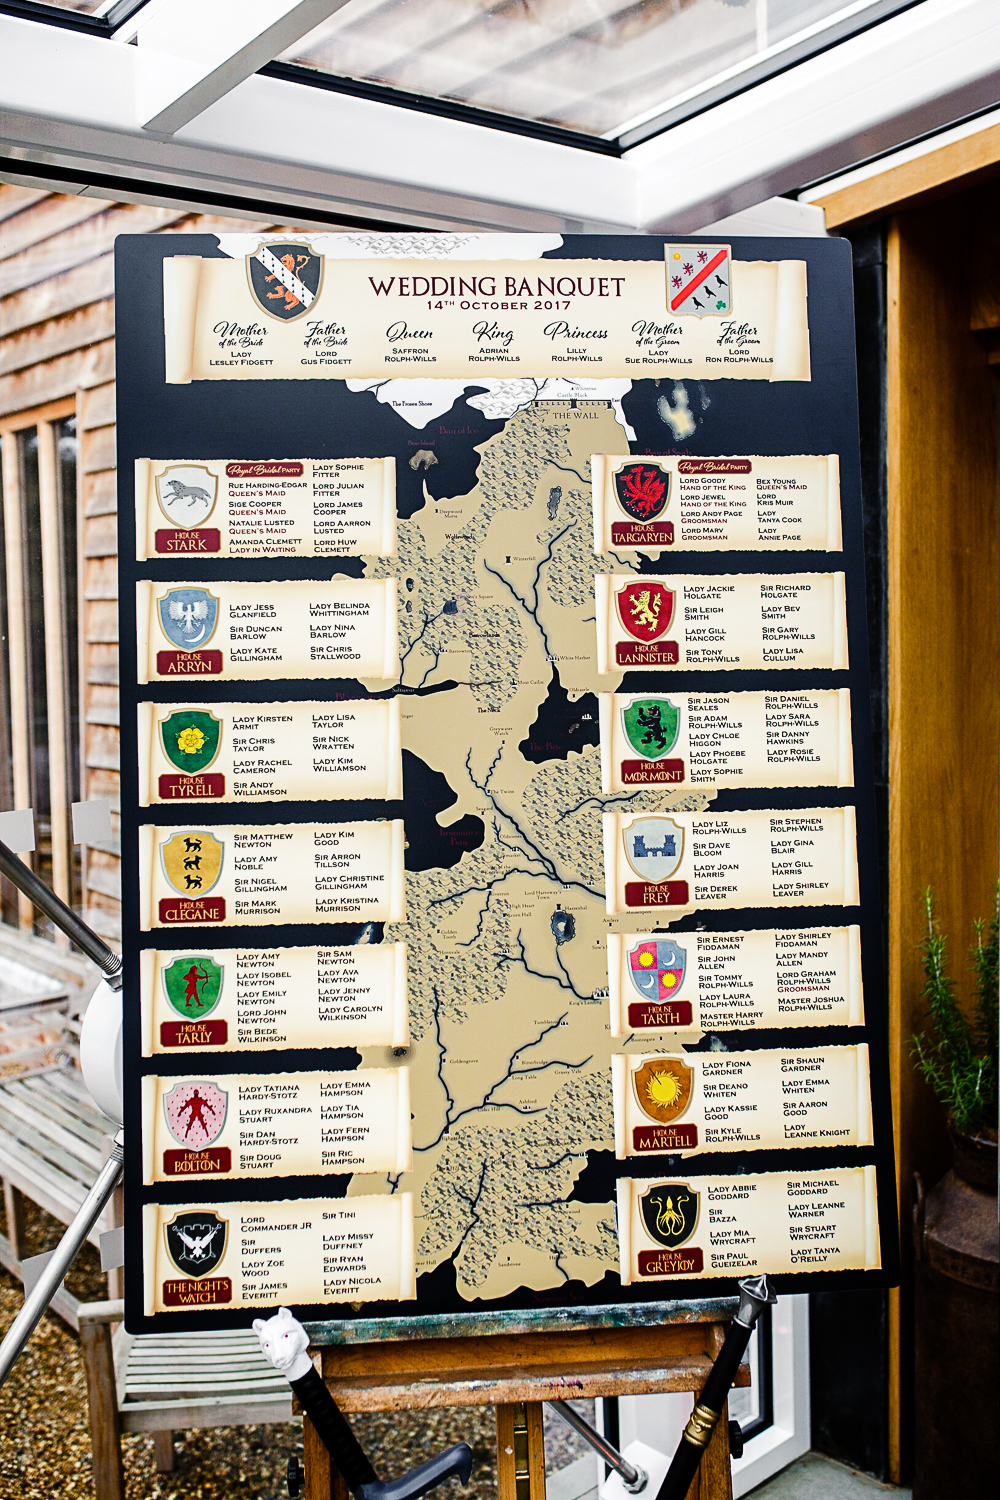 Table Plan - Game of Thrones Themed Wedding Banquet at Tudor Barn Belstead Suffolk